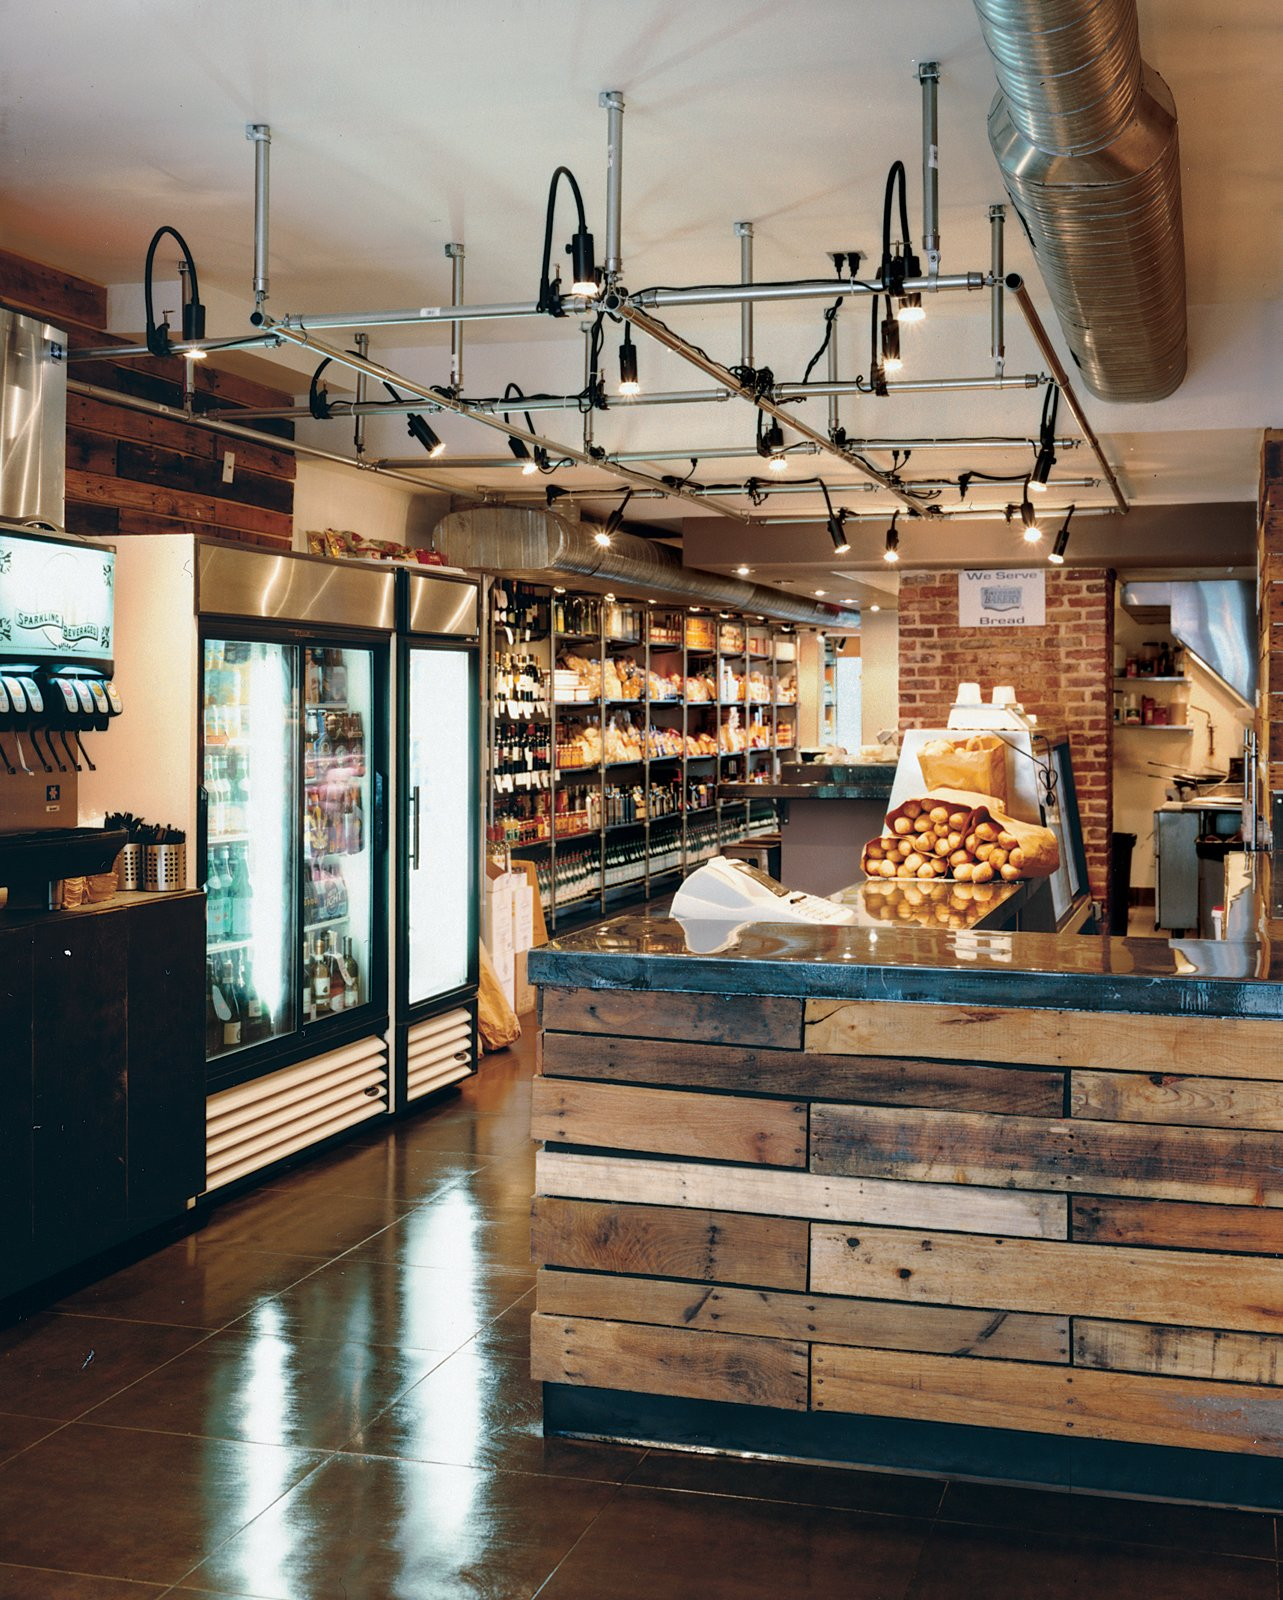 The market's shelves are lined with all manner of Italian goodies, and the lighting grid on the ceiling, made of chain-link fence posts, is a nod to the grids common in Italian delis.  60+ Modern Lighting Solutions by Dwell